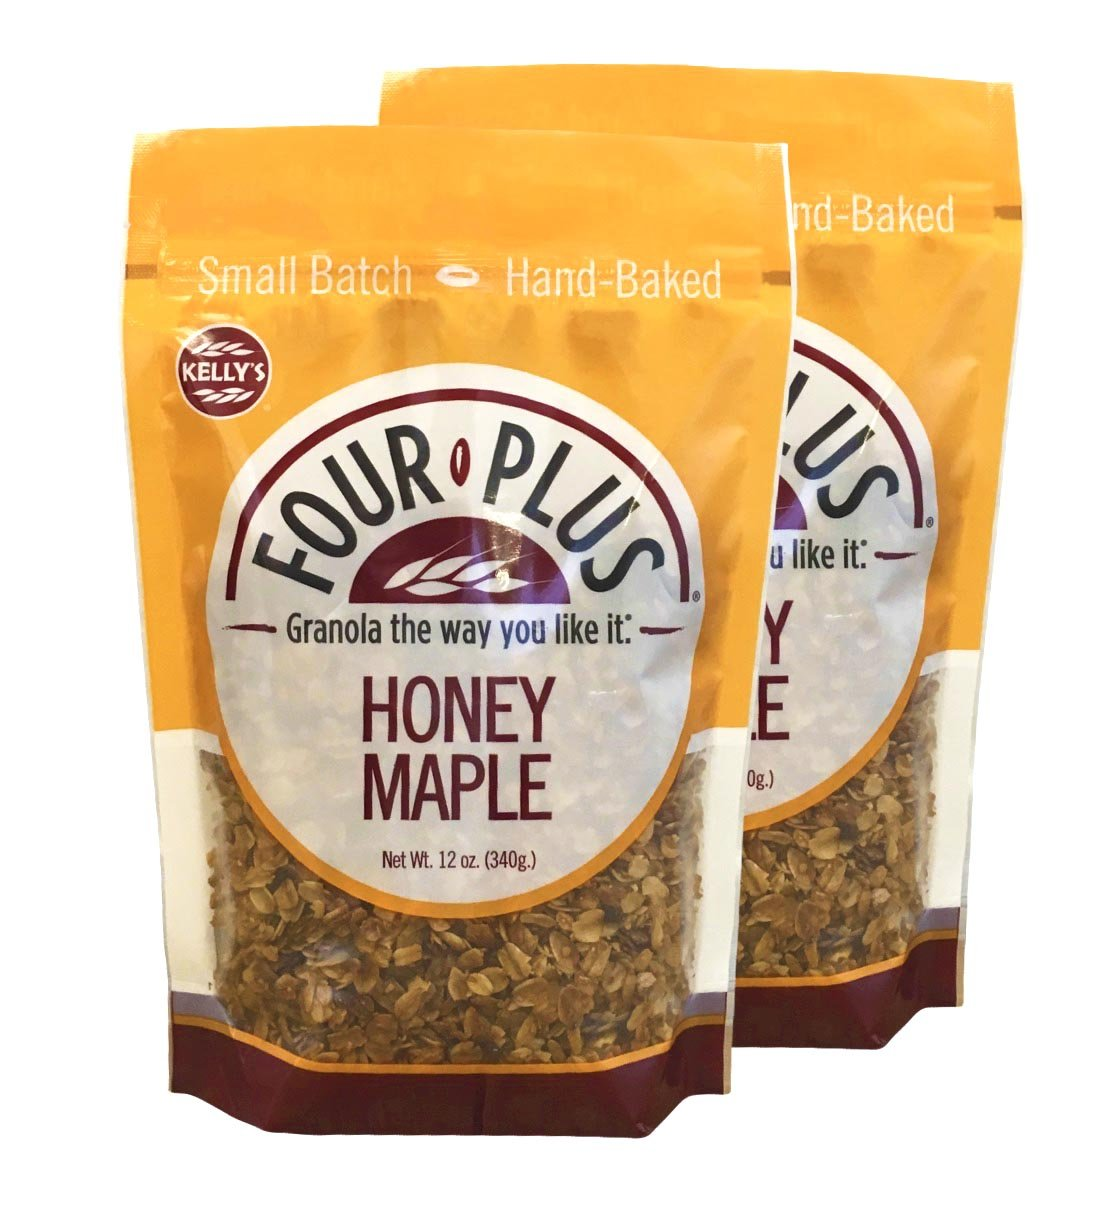 Four Plus Honey Maple Granola, 12 Ounces, 2 Count: Amazon.com: Grocery & Gourmet Food